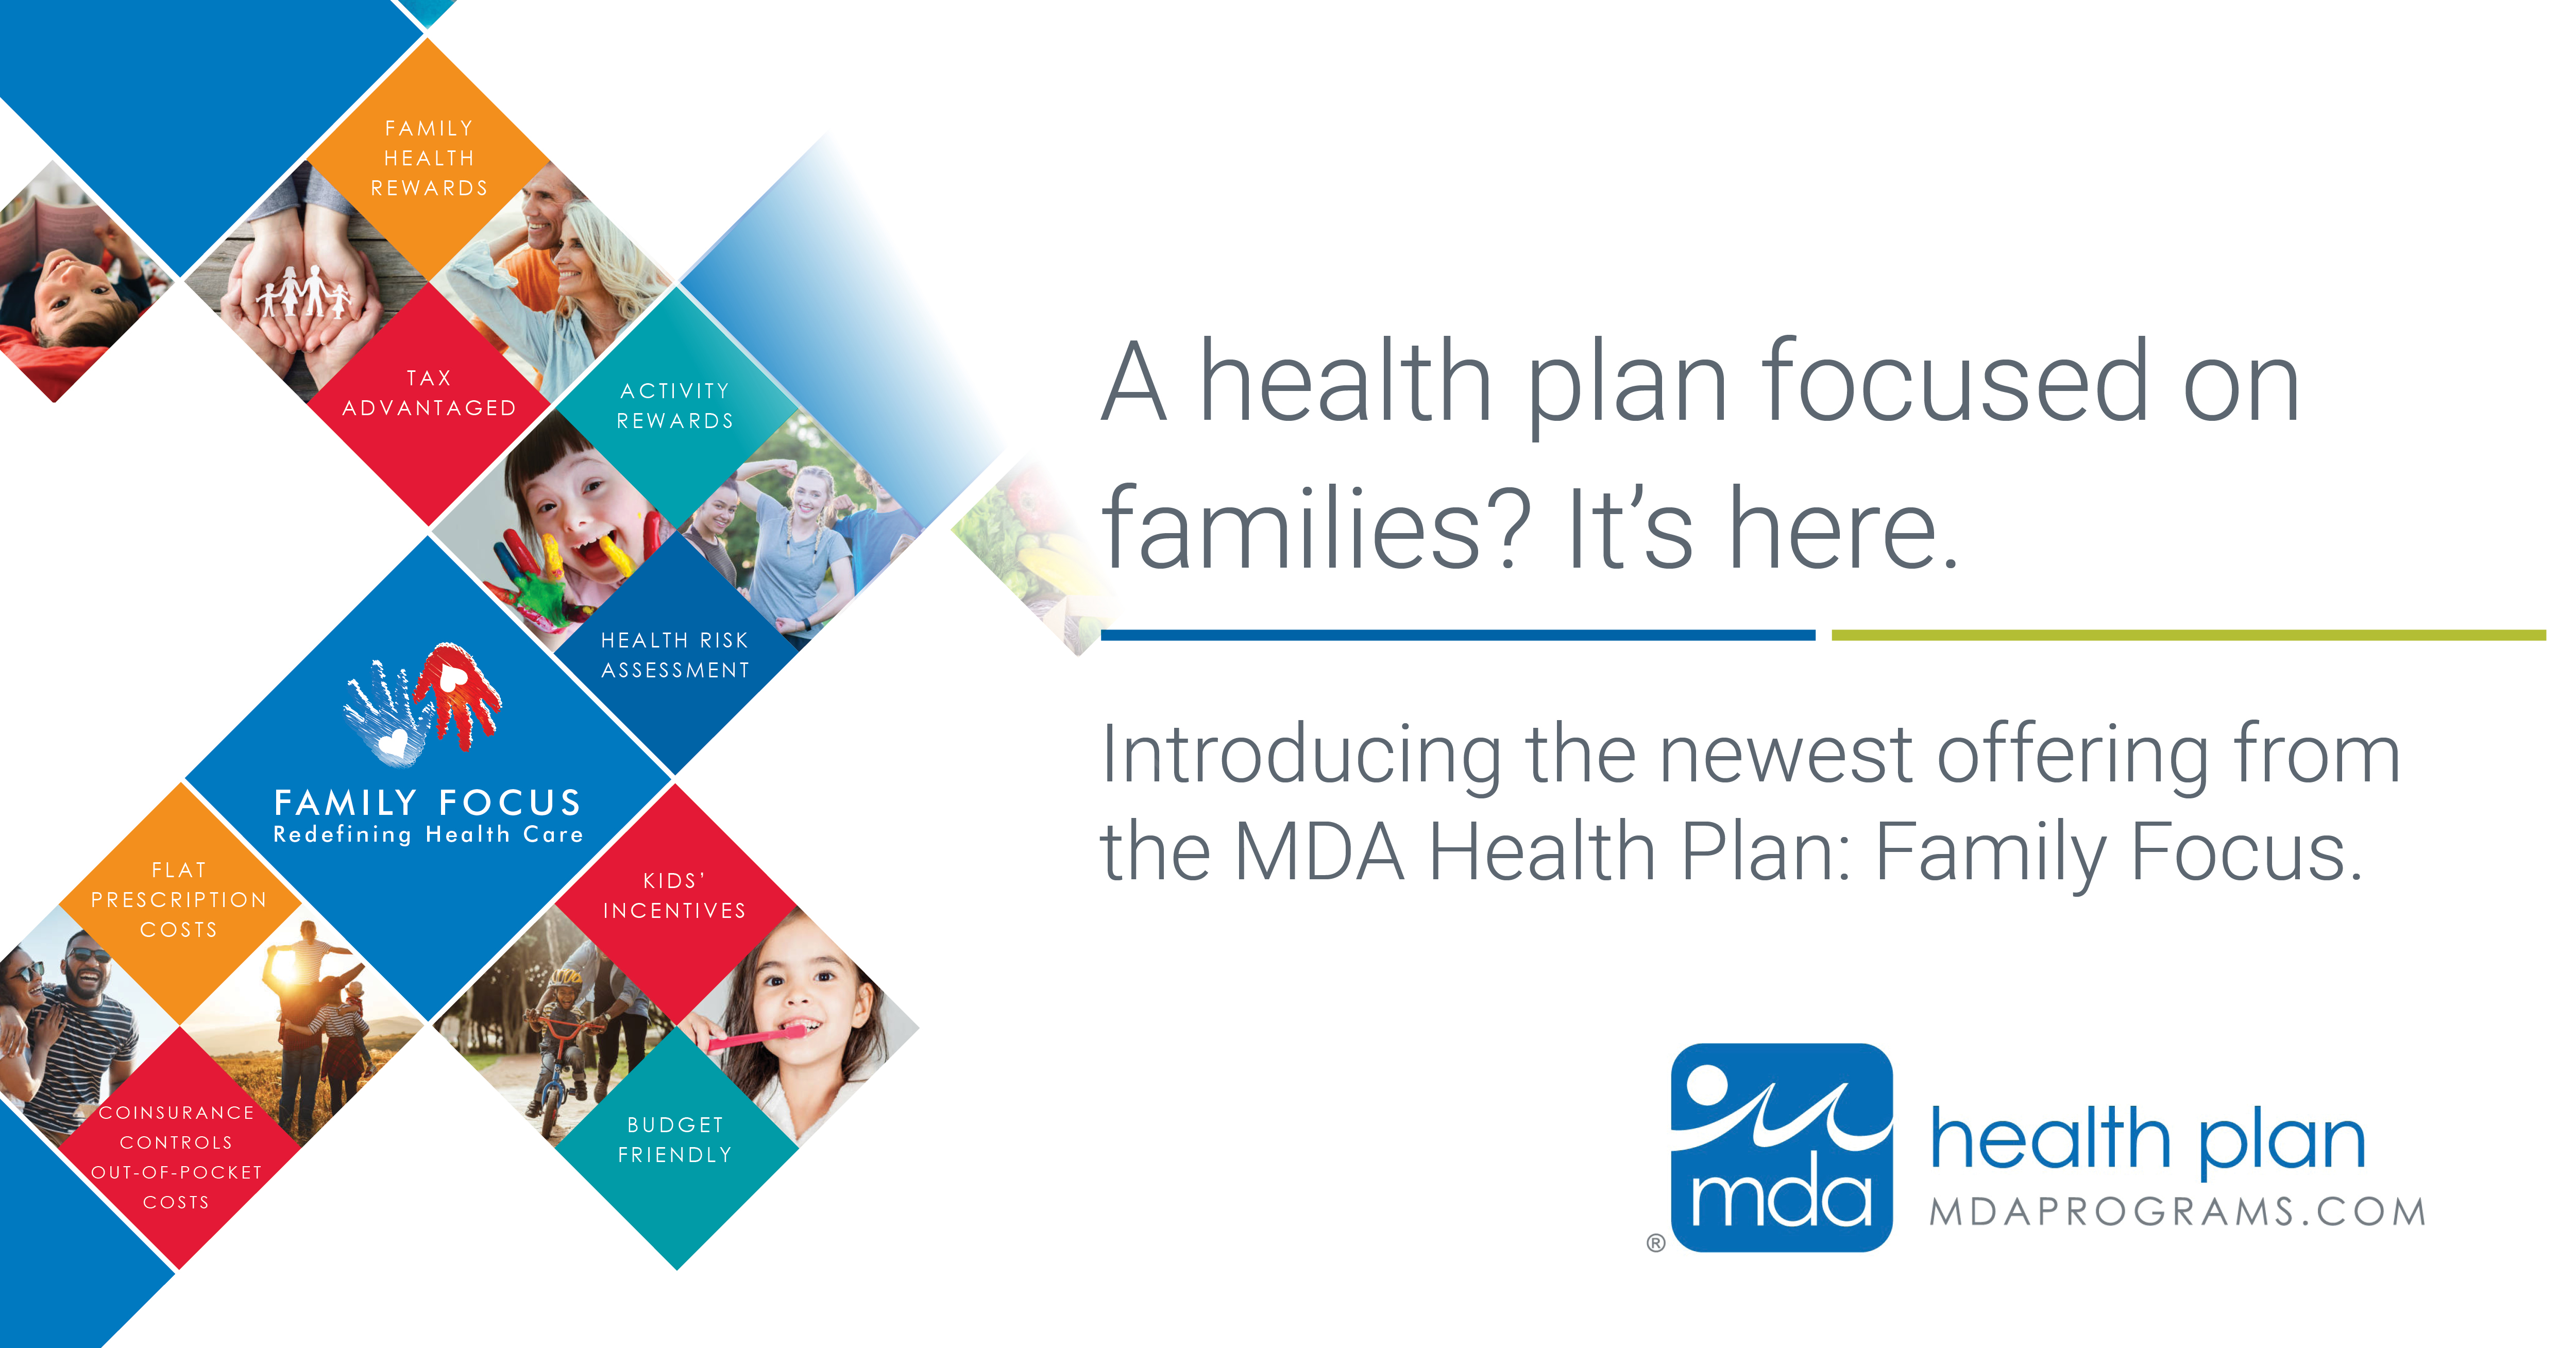 A health plan focused on families? It's here